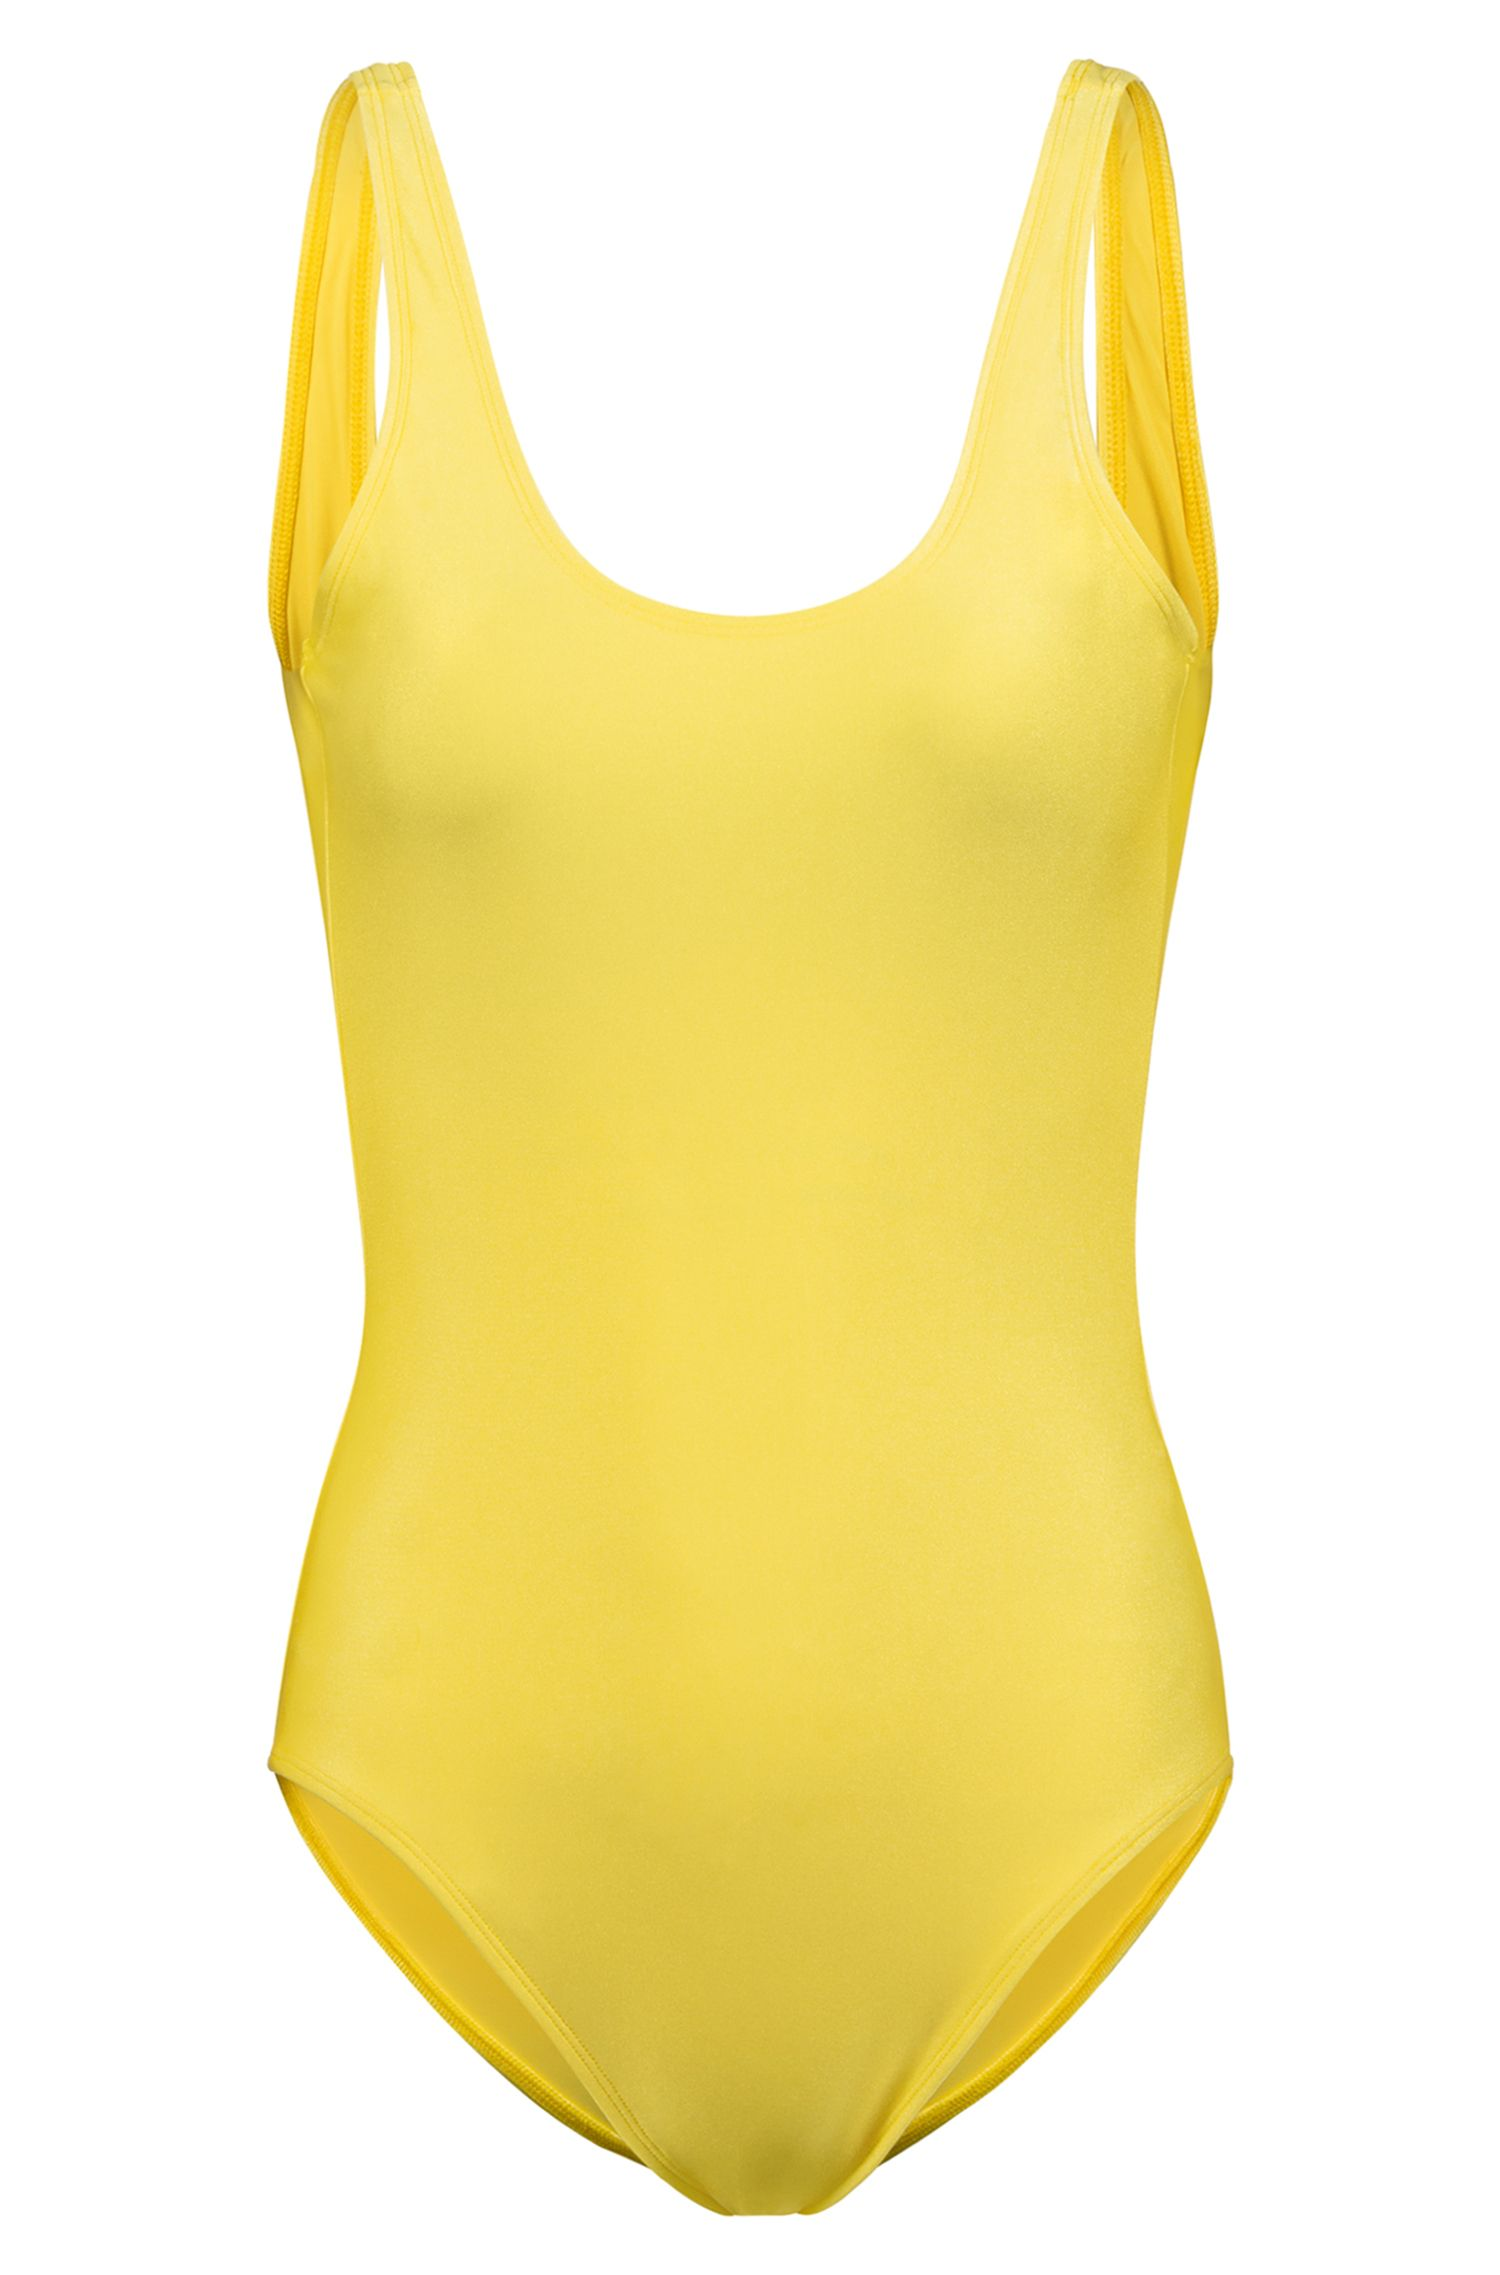 Fashion Show swimsuit with low back, Yellow